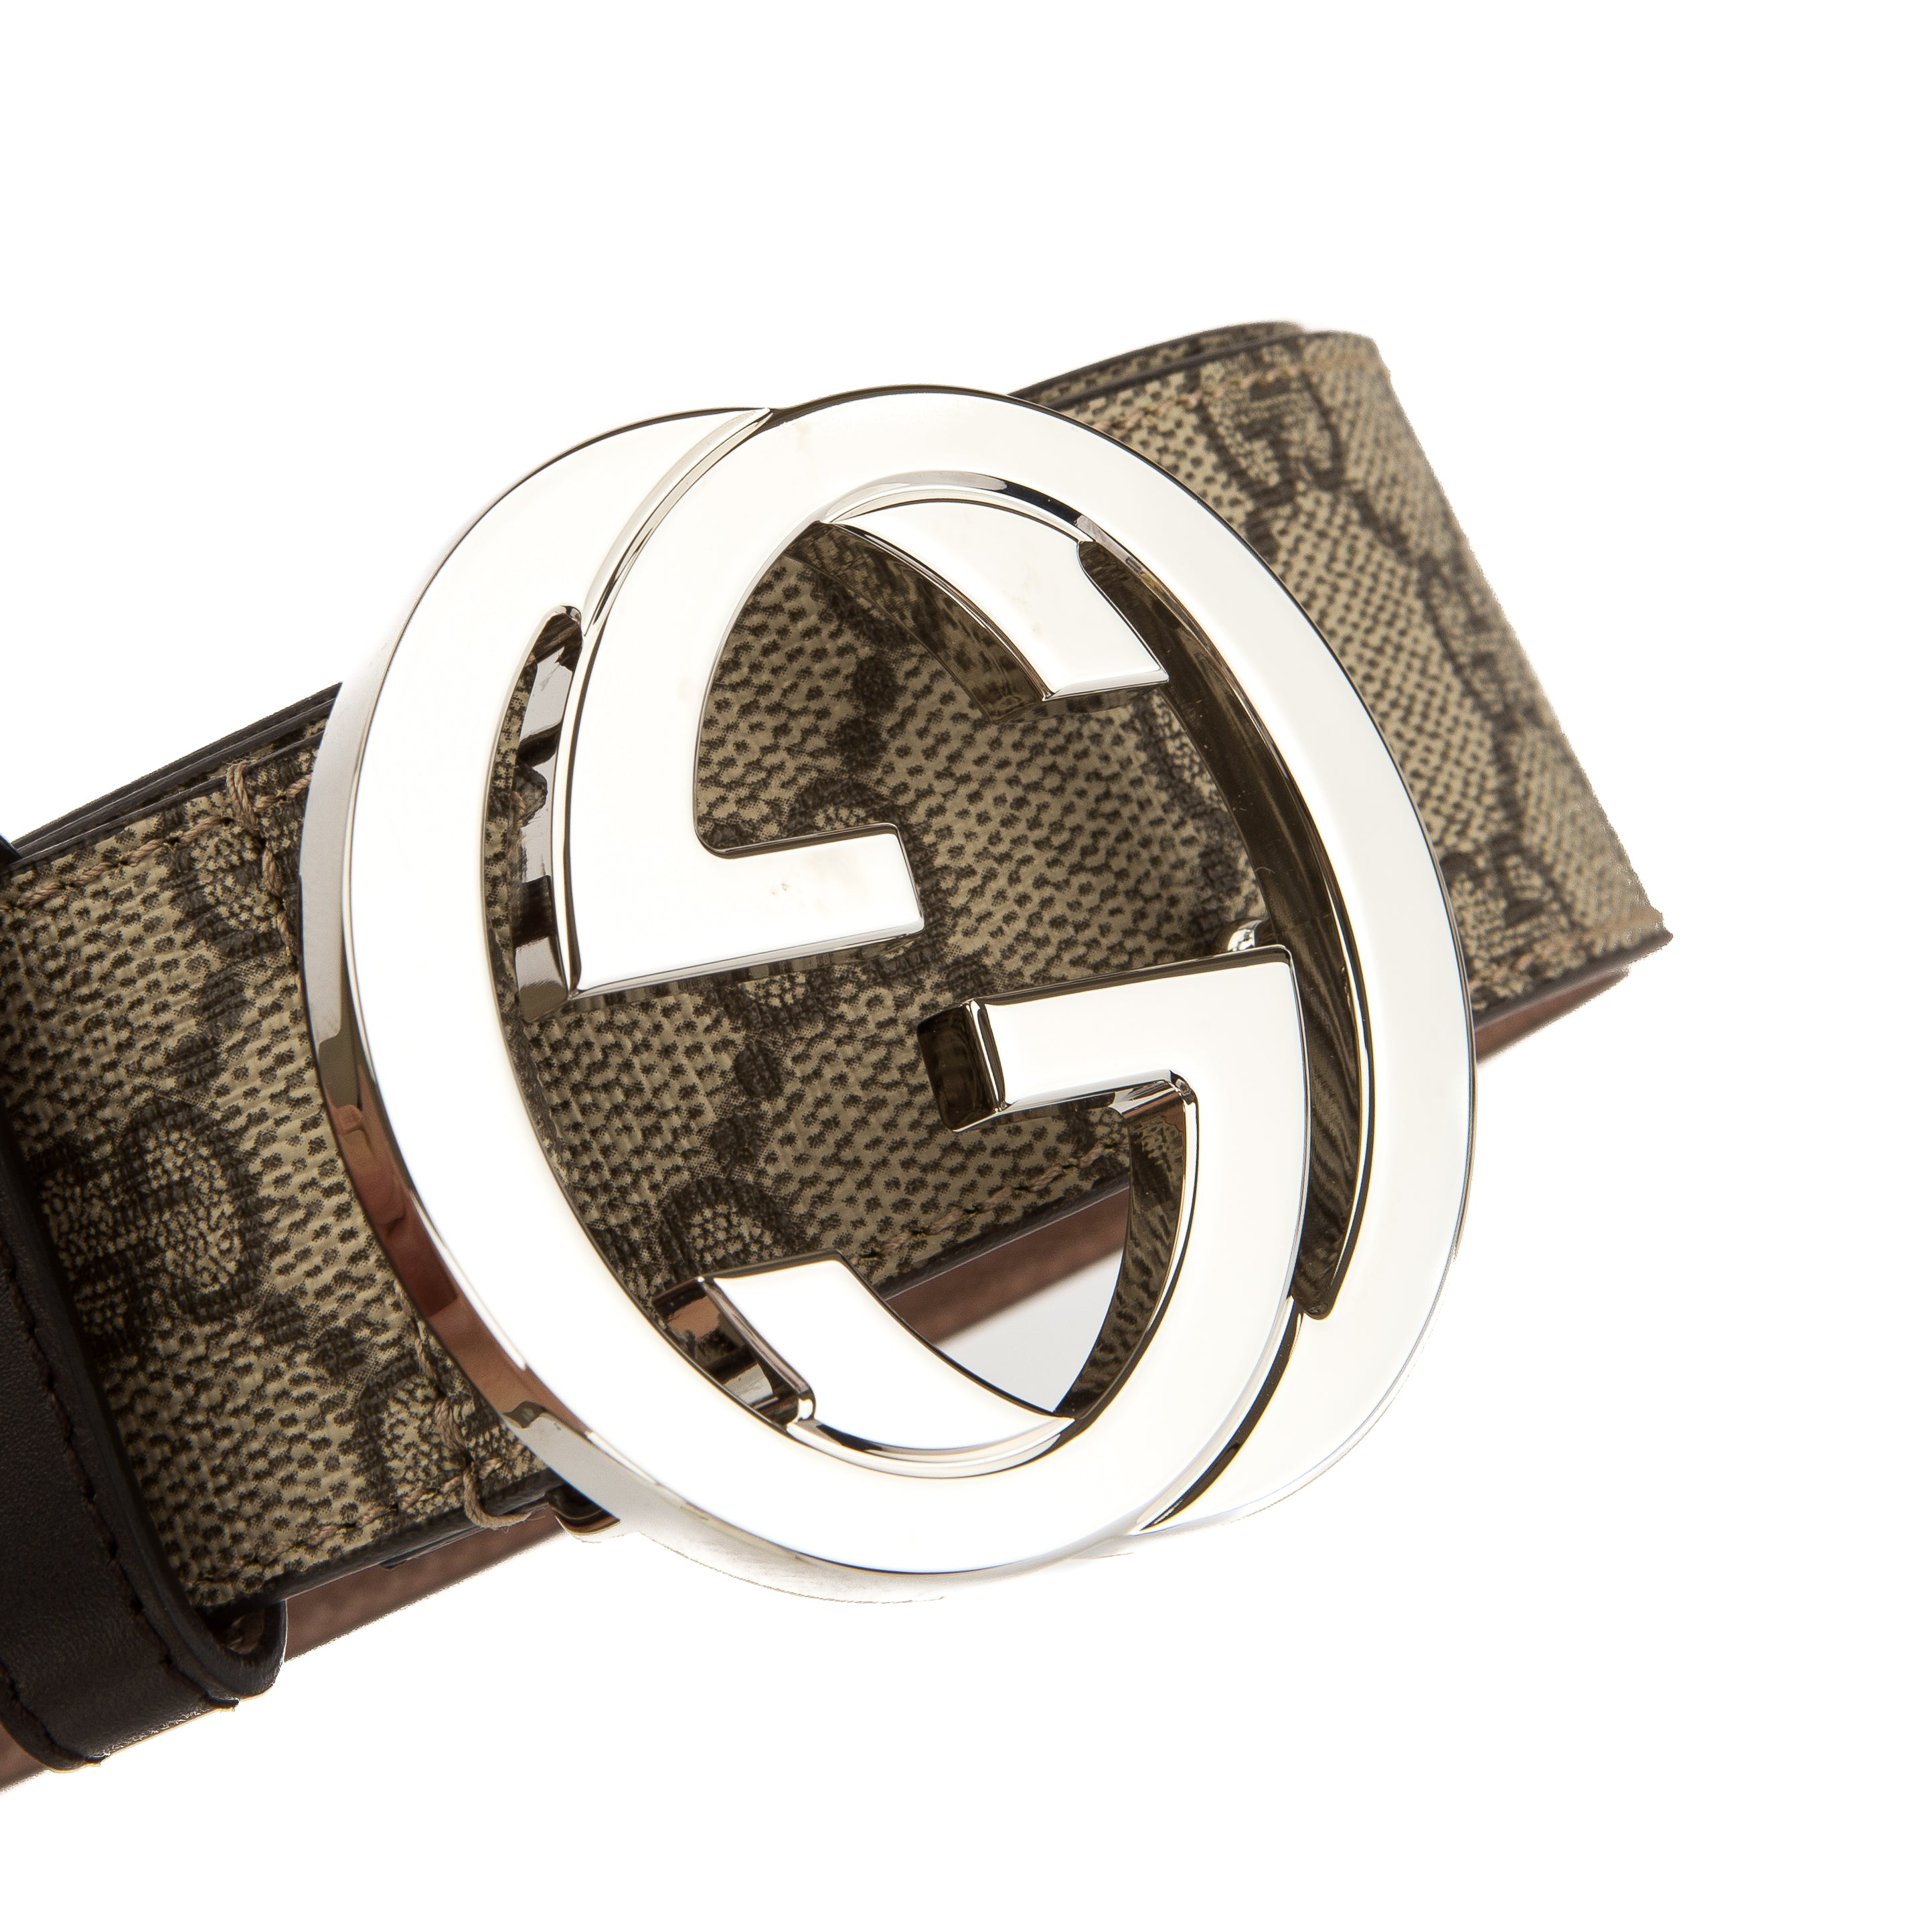 66d3d4440fa Gucci Brown Leather Reversible GG Supreme Belt (New with Tags) - 3626022